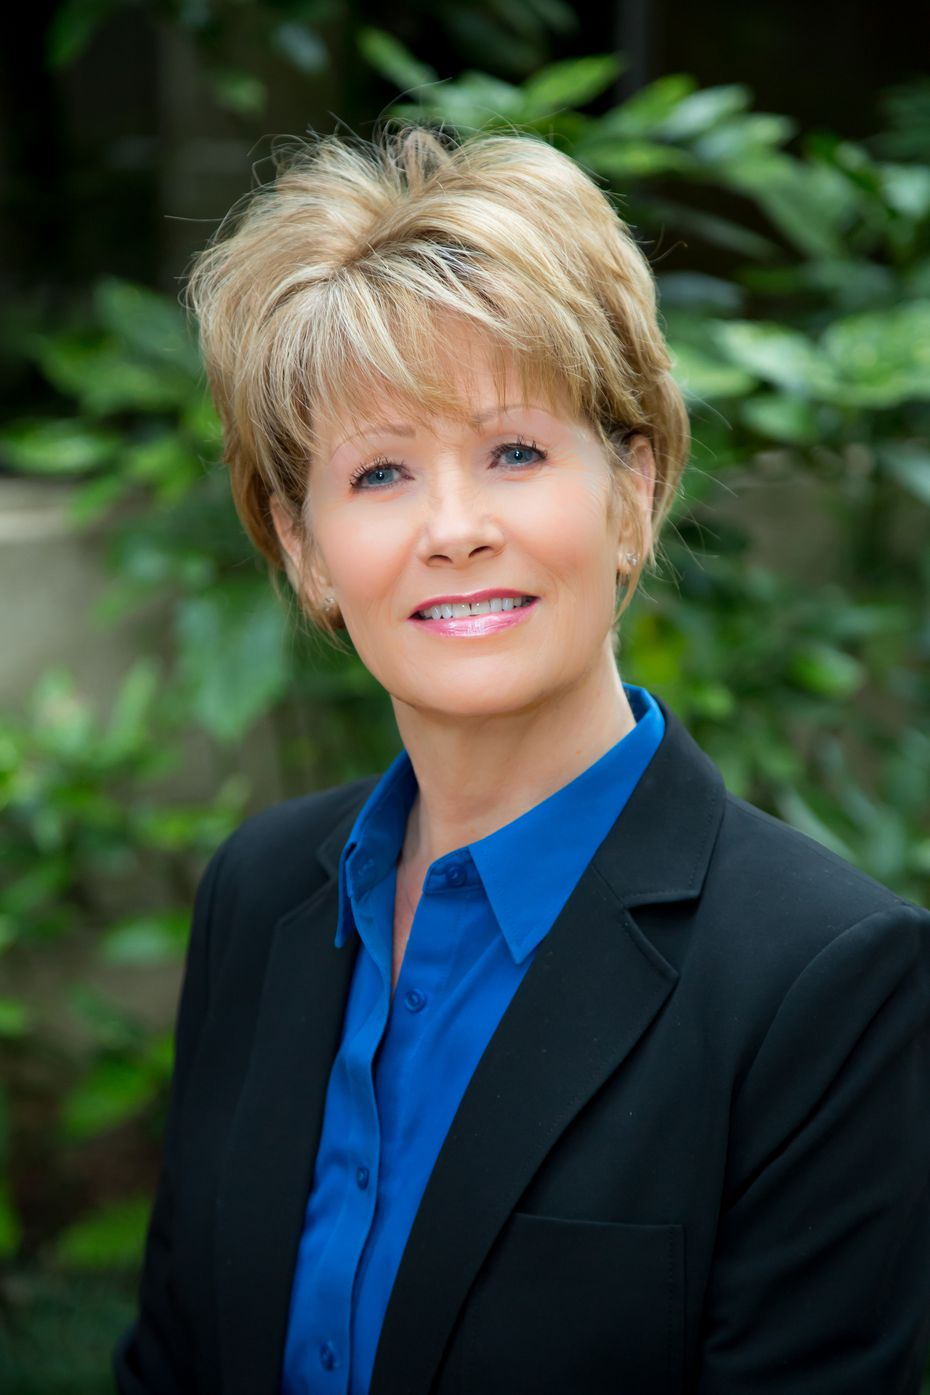 Kathy Enochs, CEO of GPA